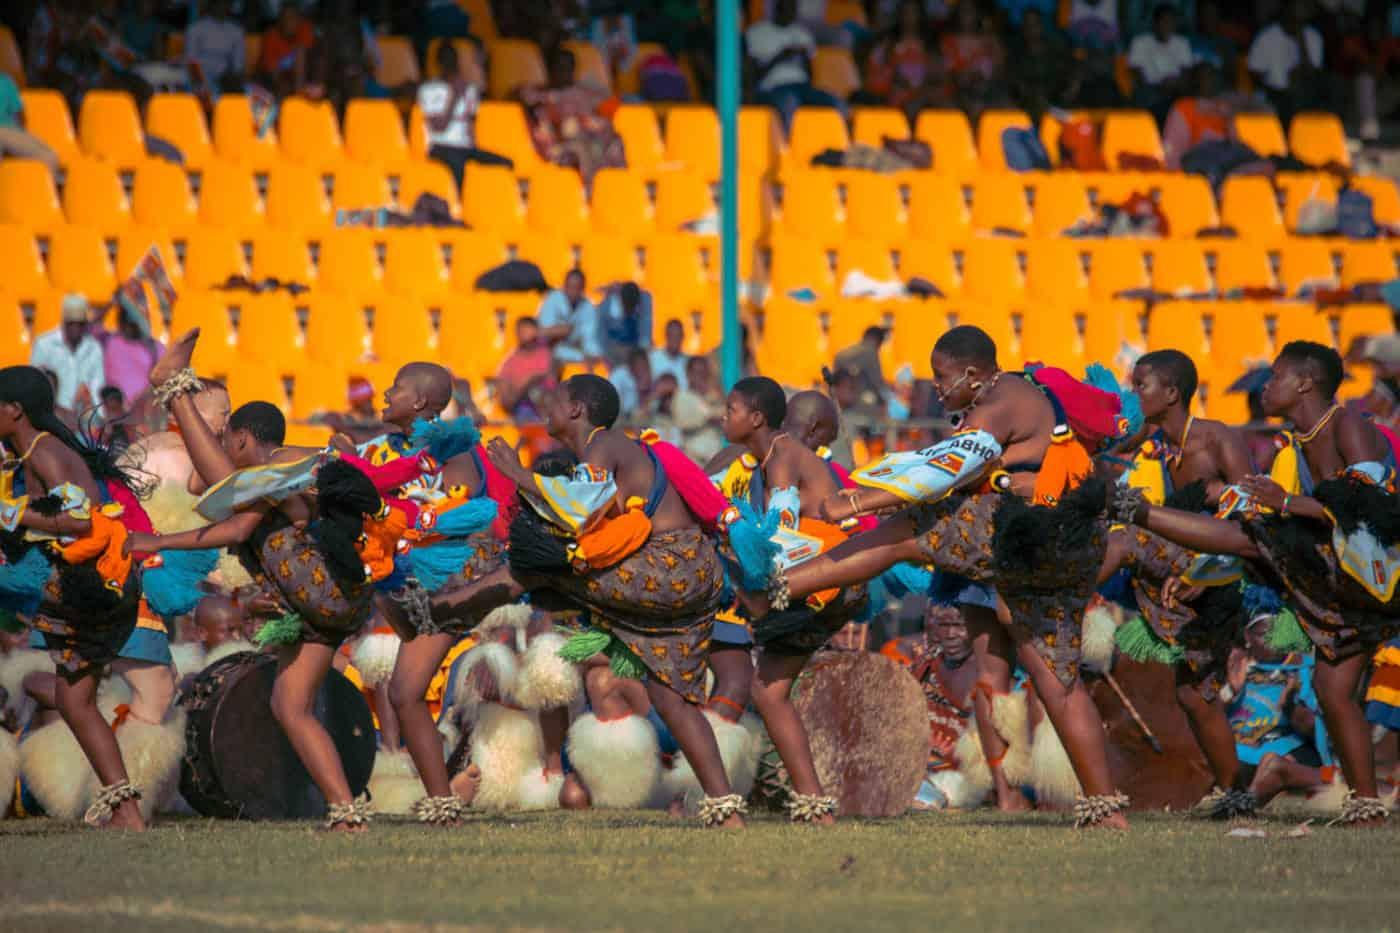 Swaziland traditional dancing